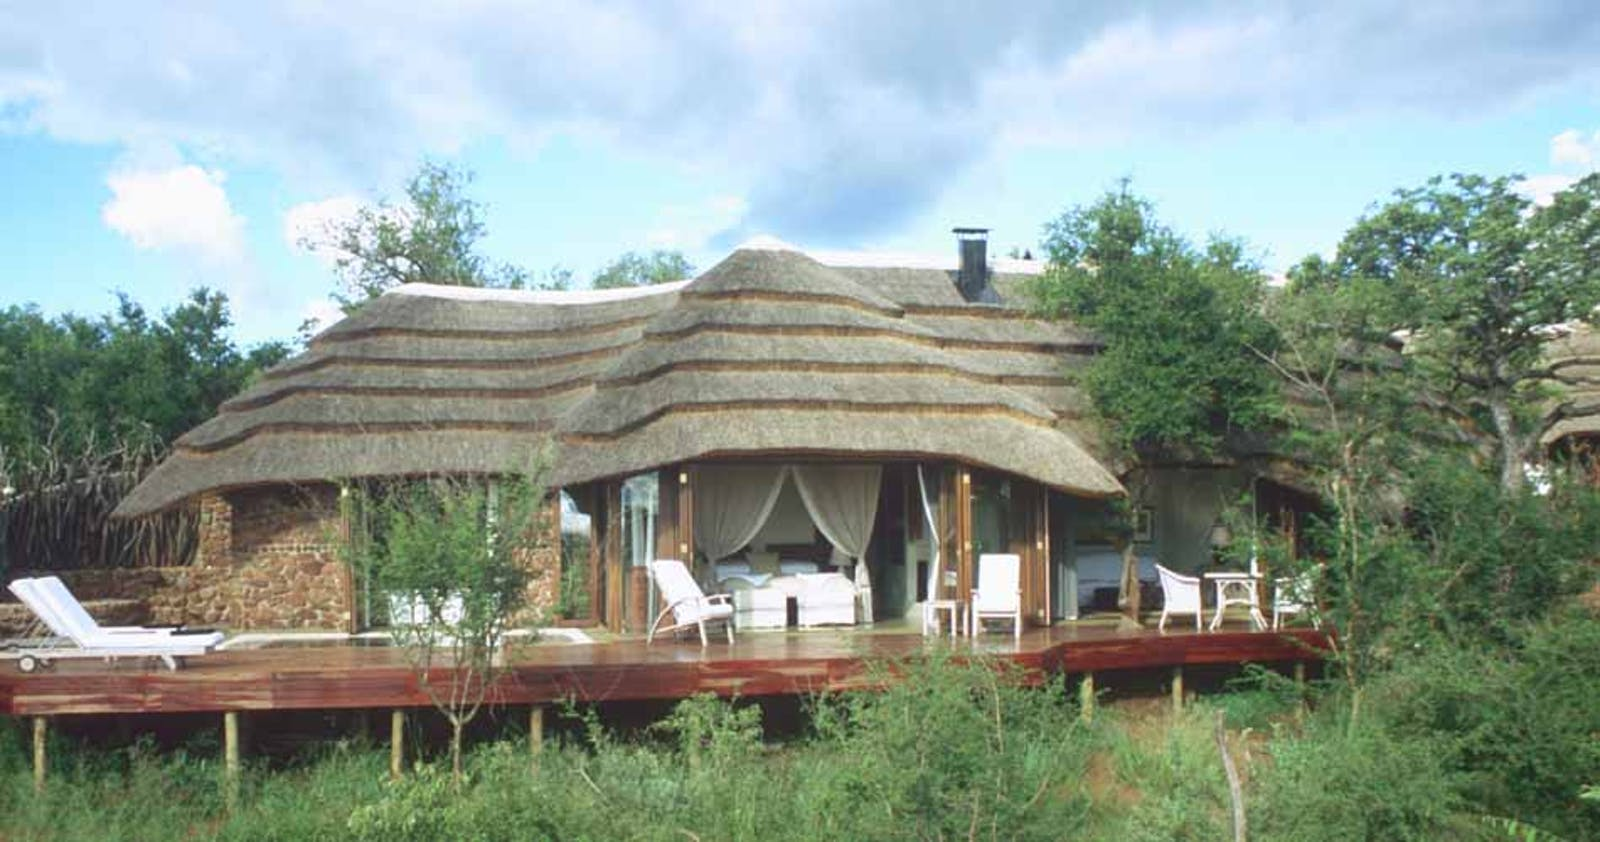 Exterior View of Villa at Madikwe Hills Madikwe Game Reserve